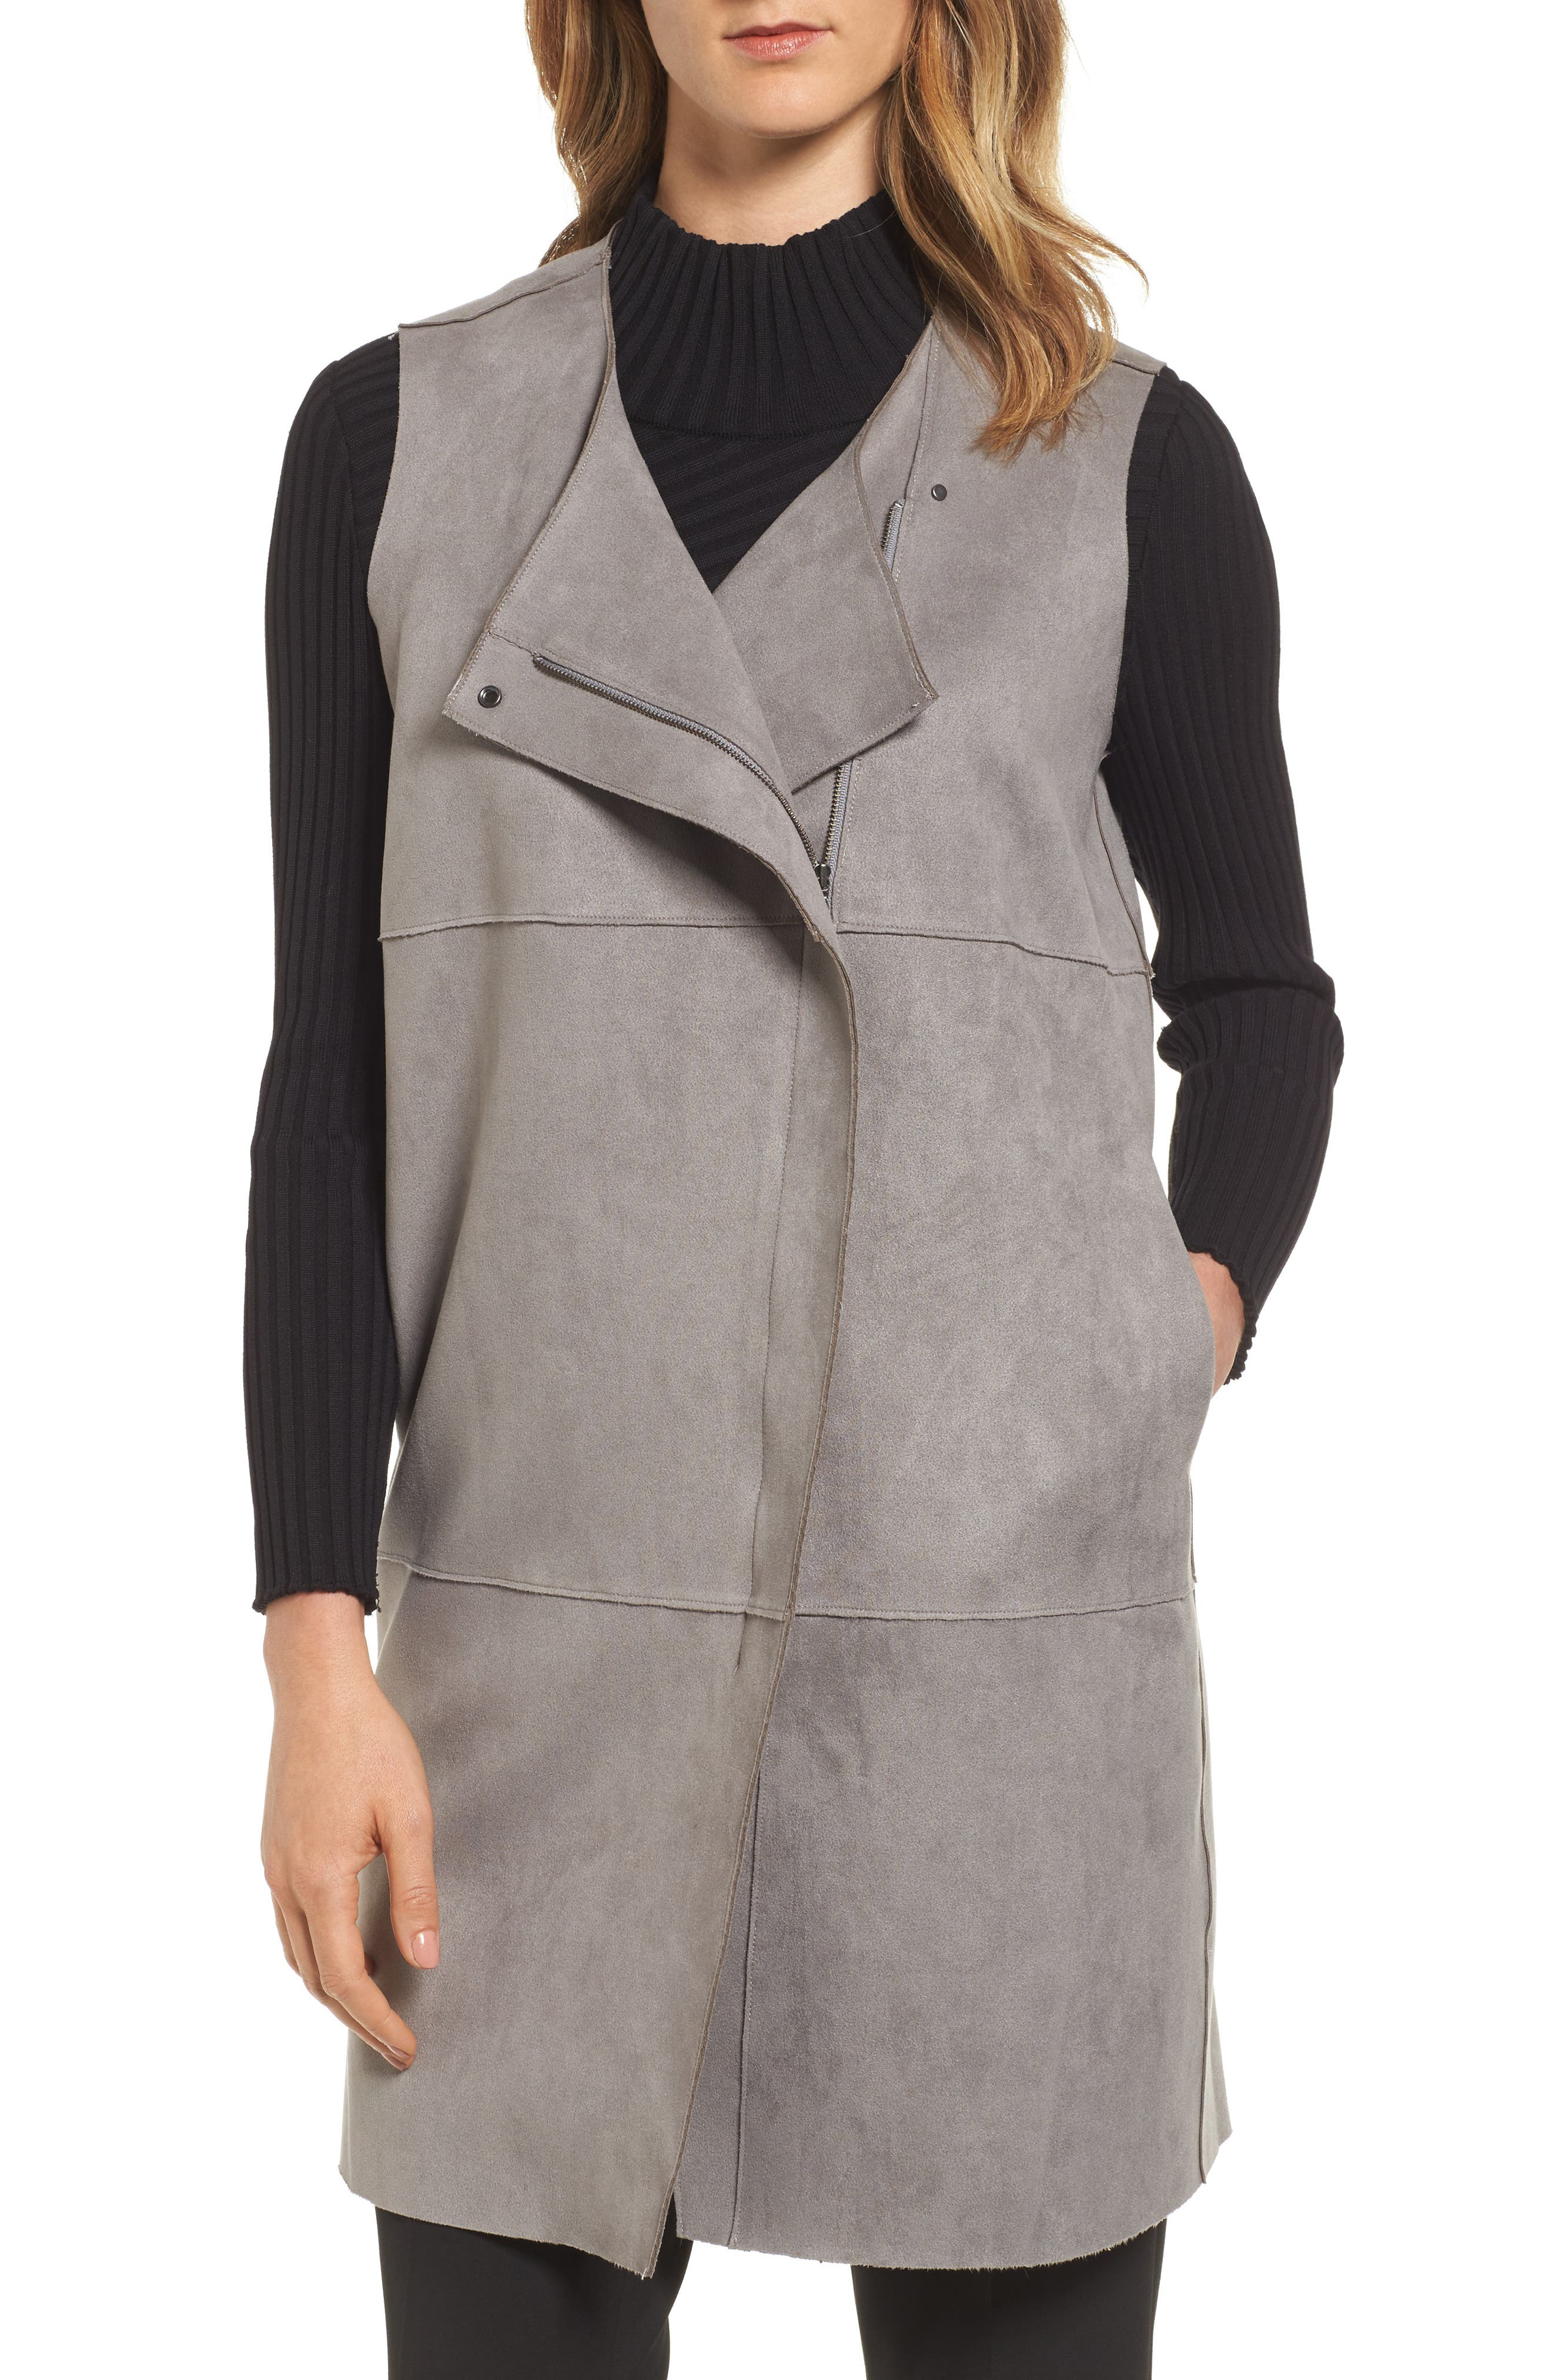 Alternate Image 1 Selected - Ming Wang Asymmetrical Faux Suede Vest